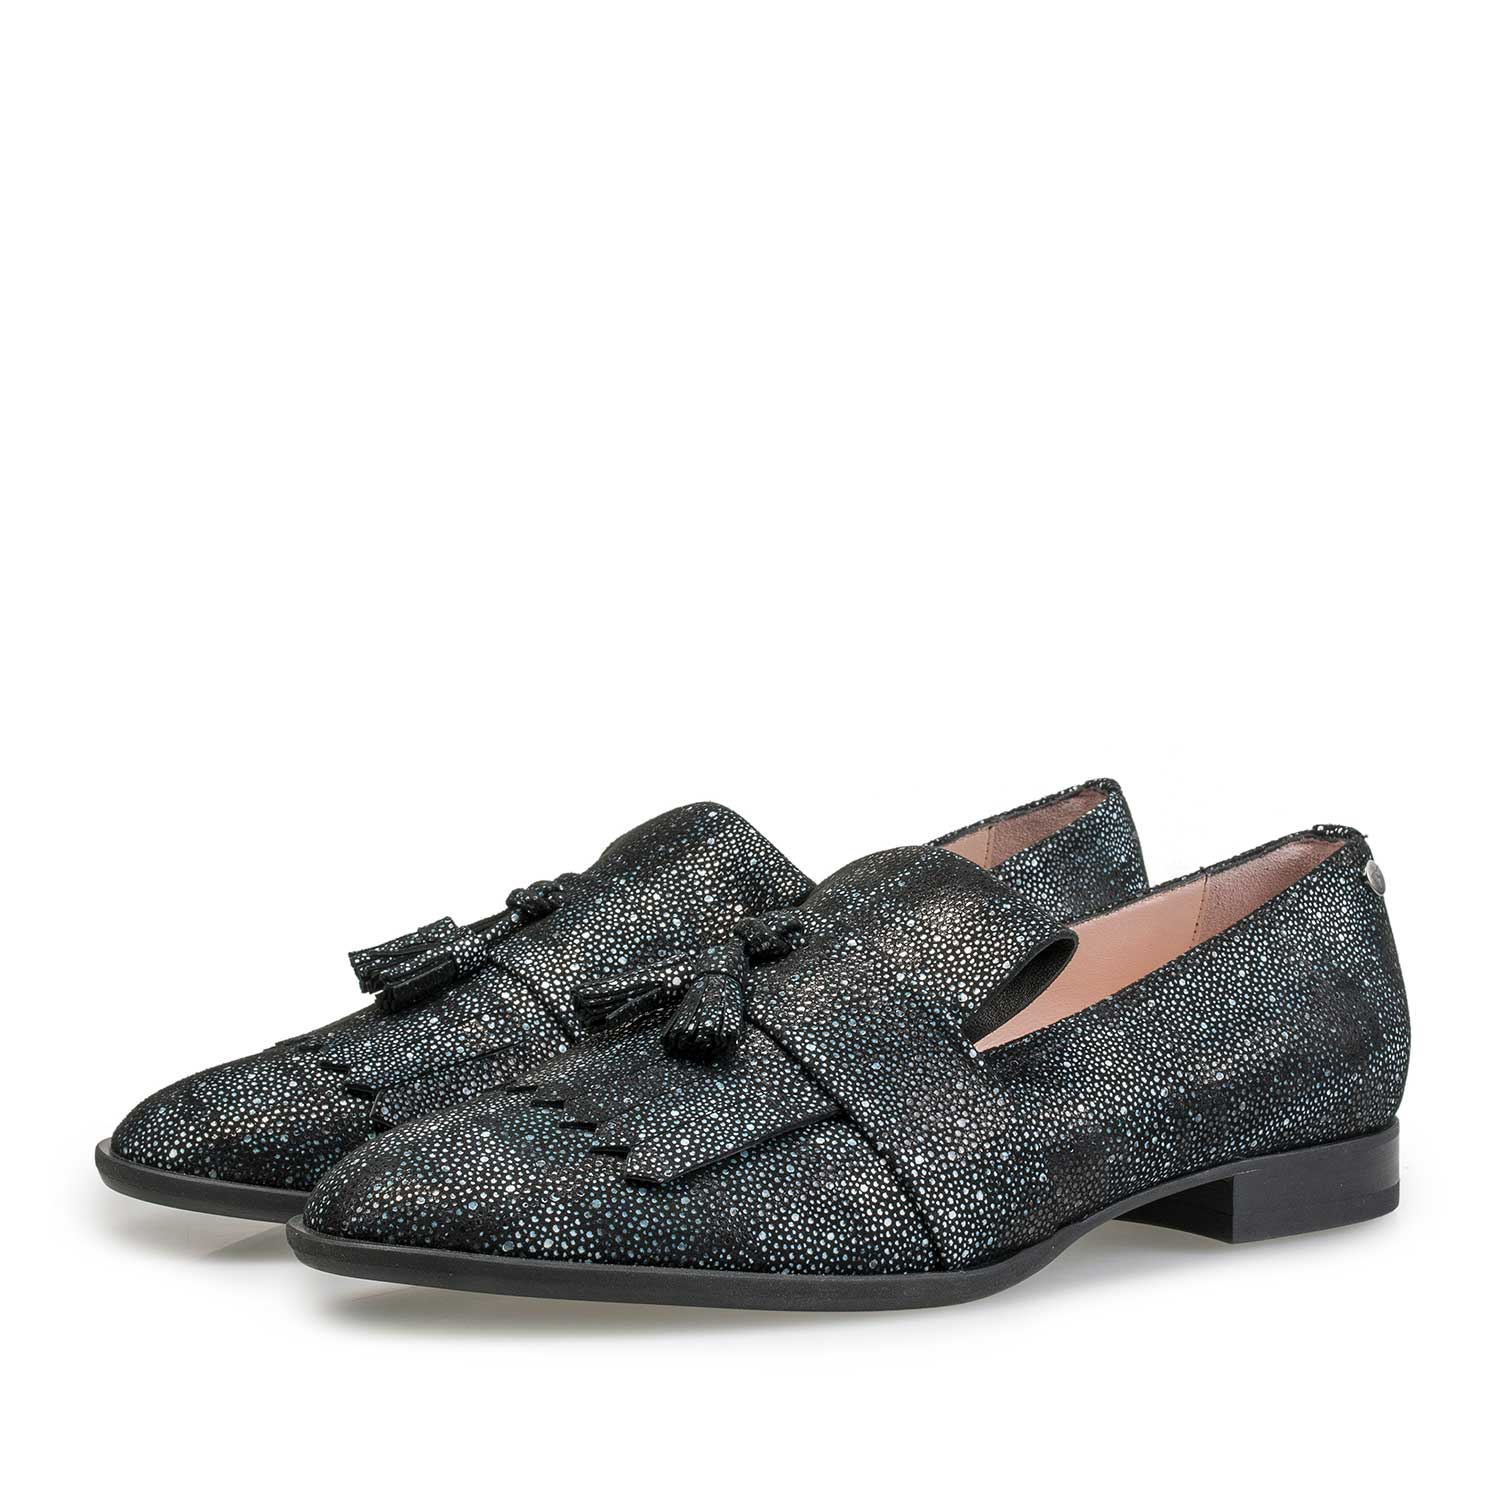 85401/00 - Black and blue leather loafer with check pattern